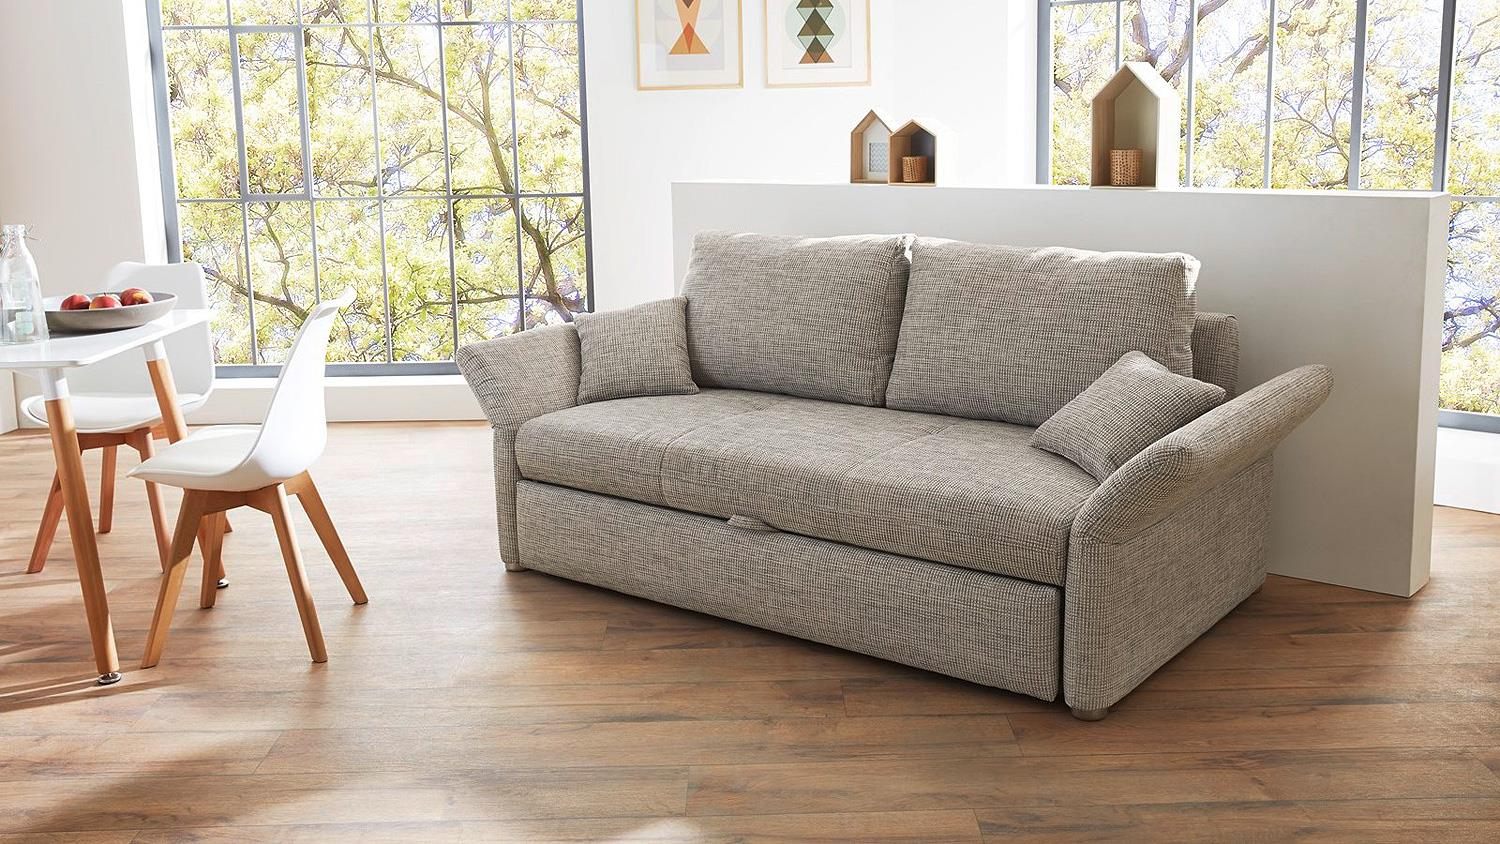 funktionssofa luca sofa in grau mit bettfunktion 140 cm. Black Bedroom Furniture Sets. Home Design Ideas